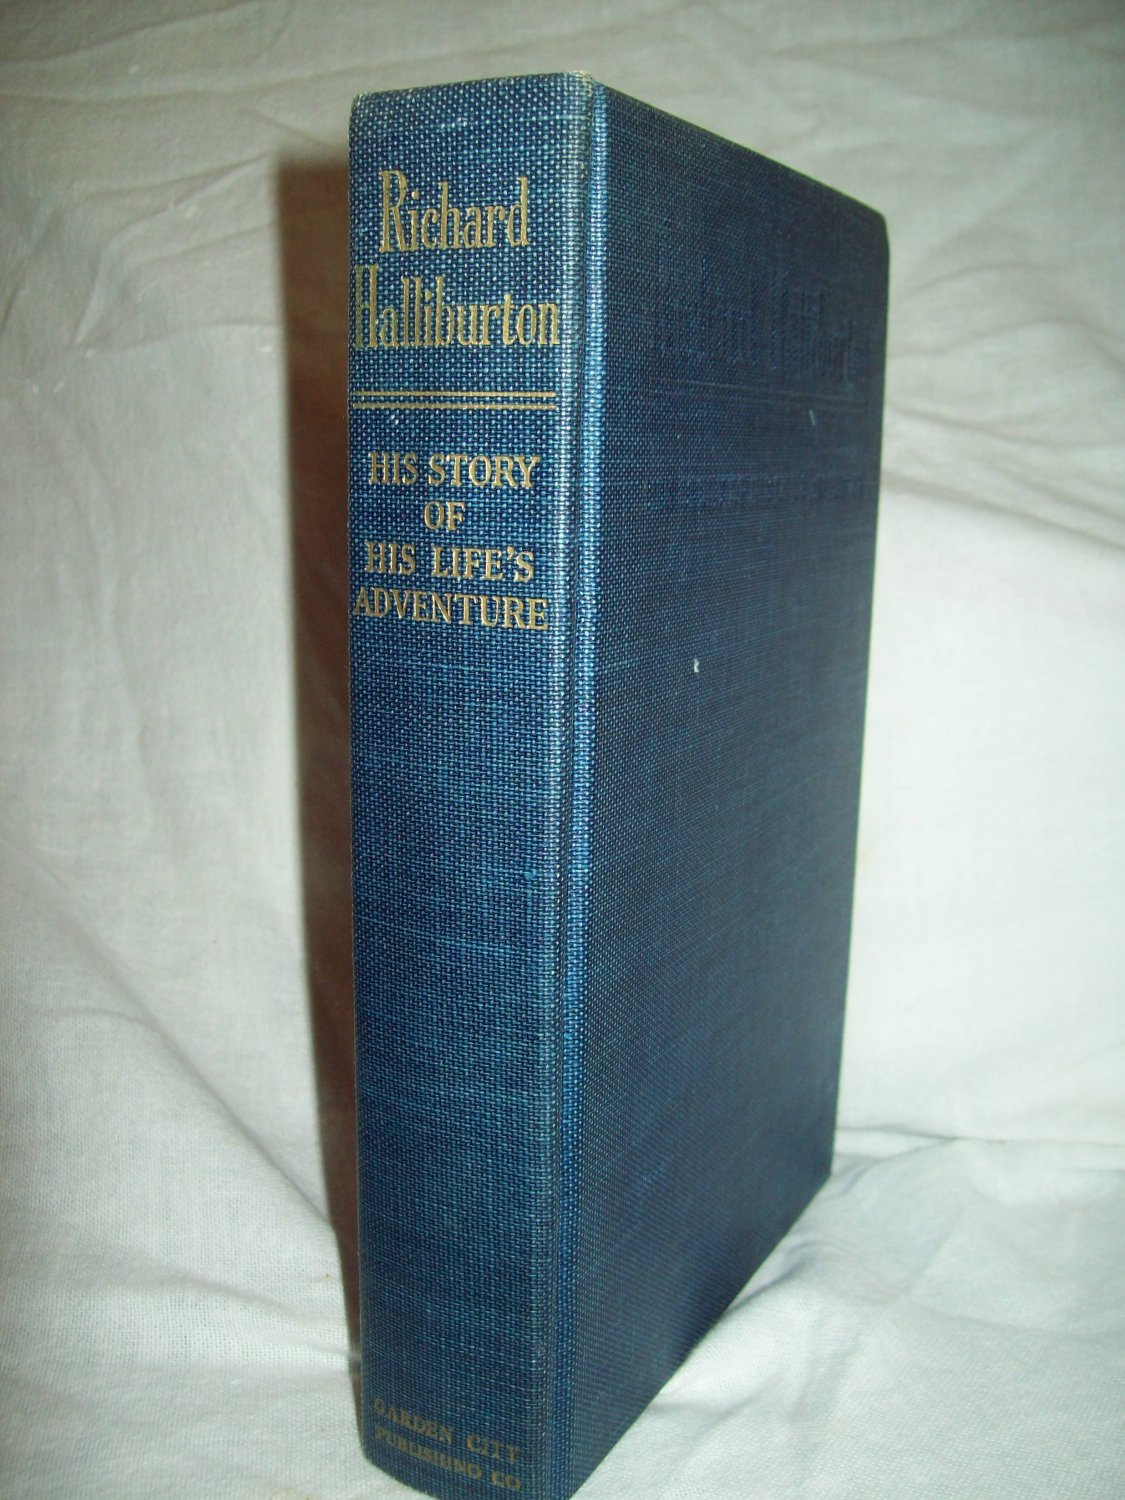 Richard Halliburton: His Story Of His Life's Adventures. Illustrated. VG+